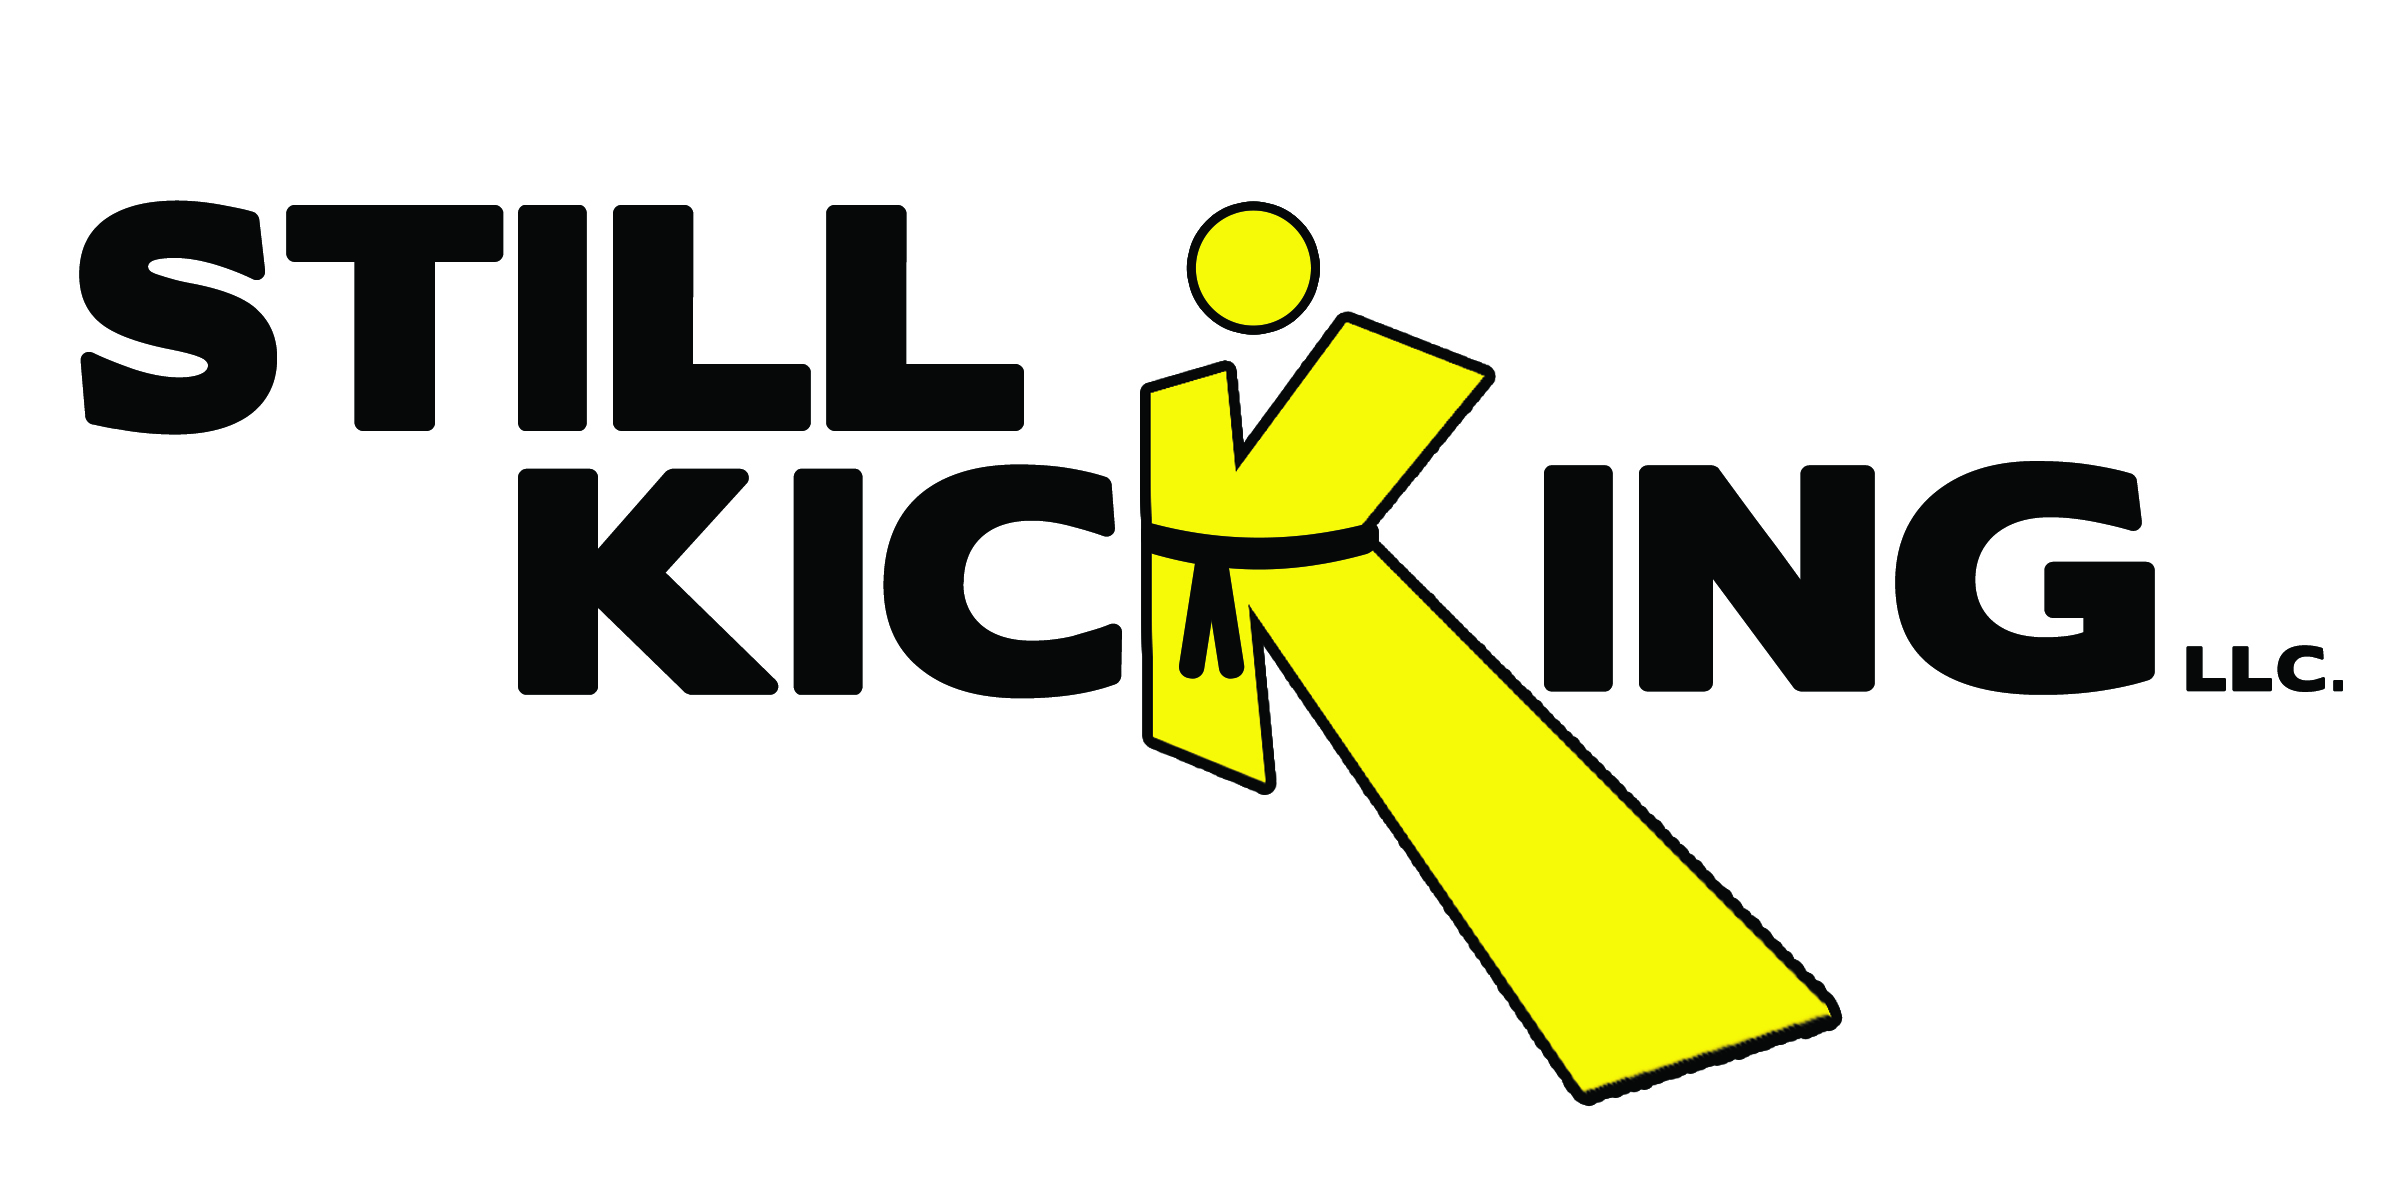 STILL_KICKING_LOGO.jpg